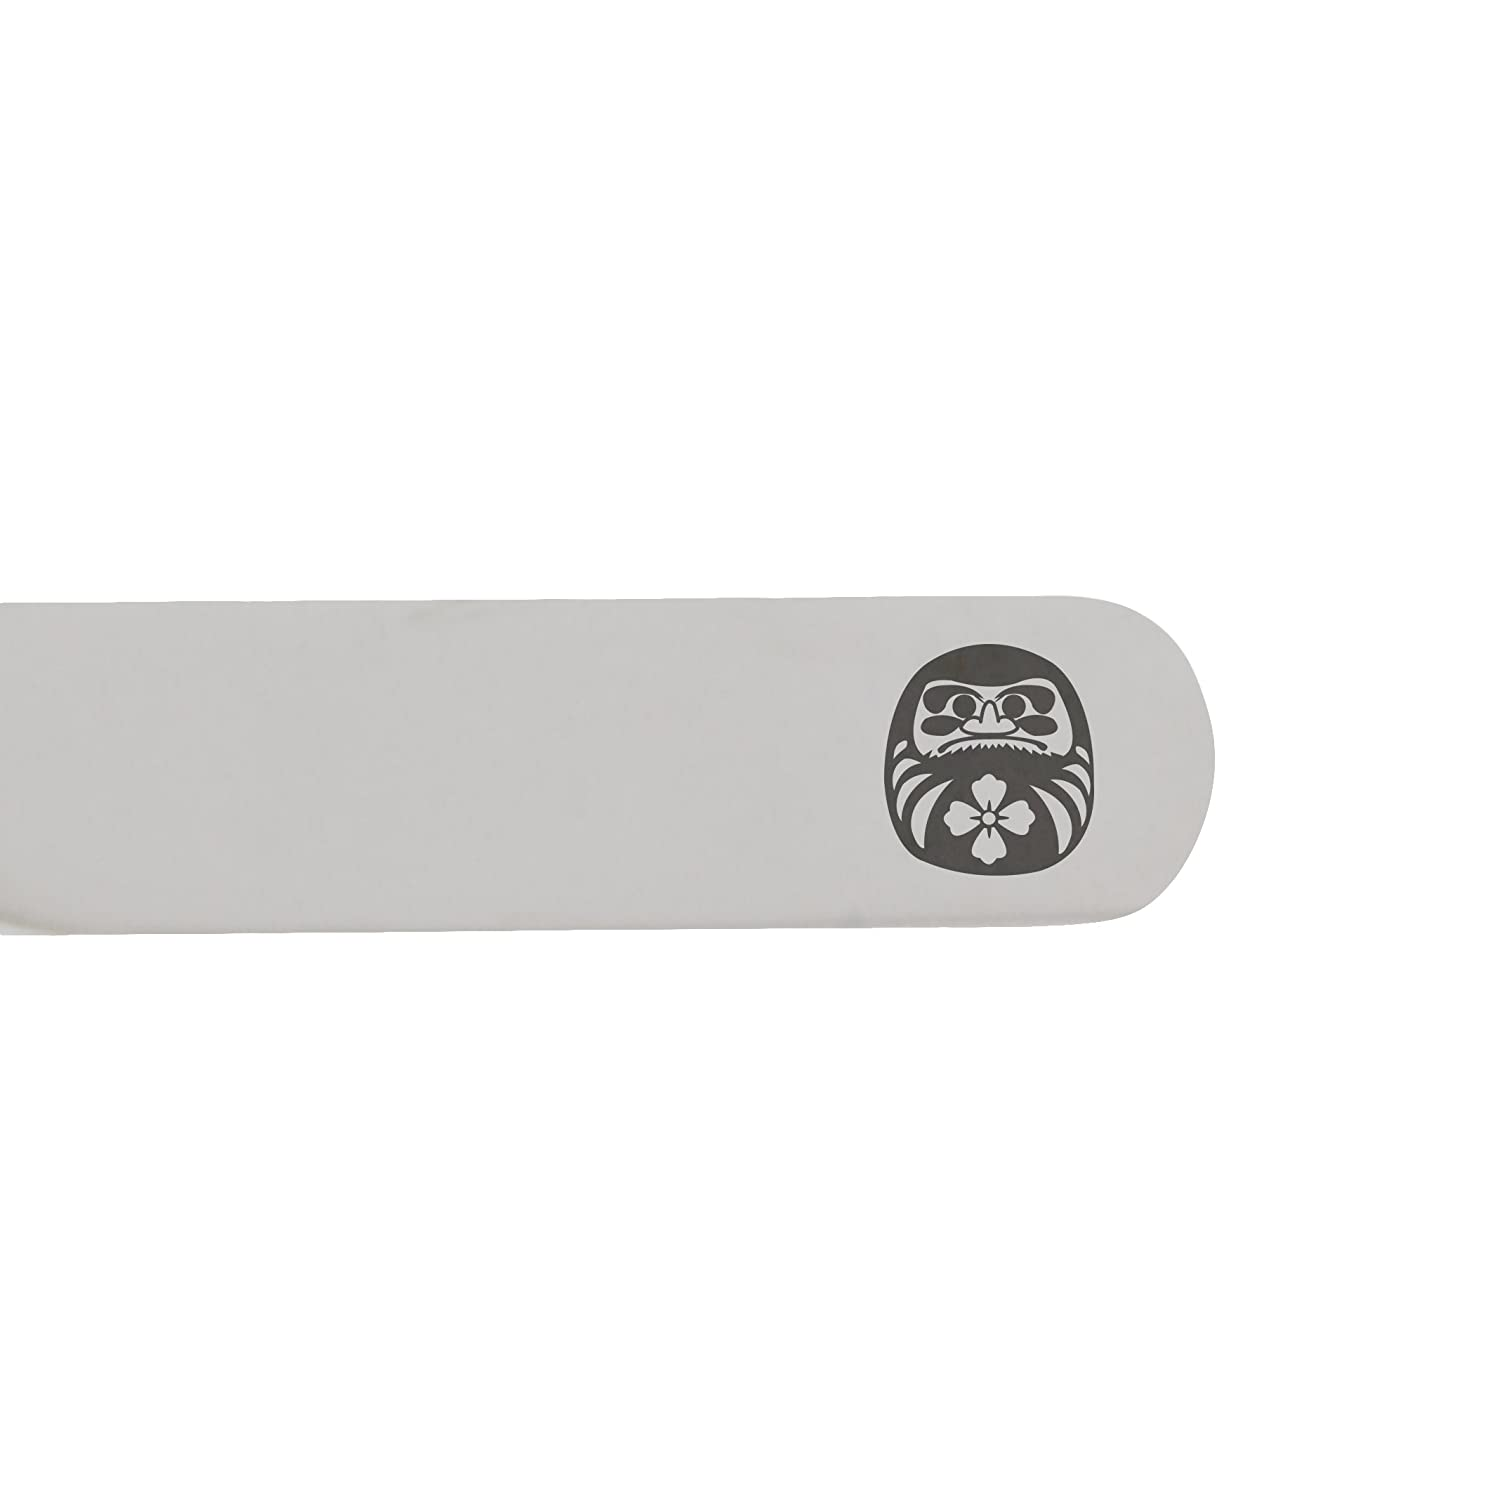 MODERN GOODS SHOP Stainless Steel Collar Stays With Laser Engraved Daruma Doll Design 2.5 Inch Metal Collar Stiffeners Made In USA